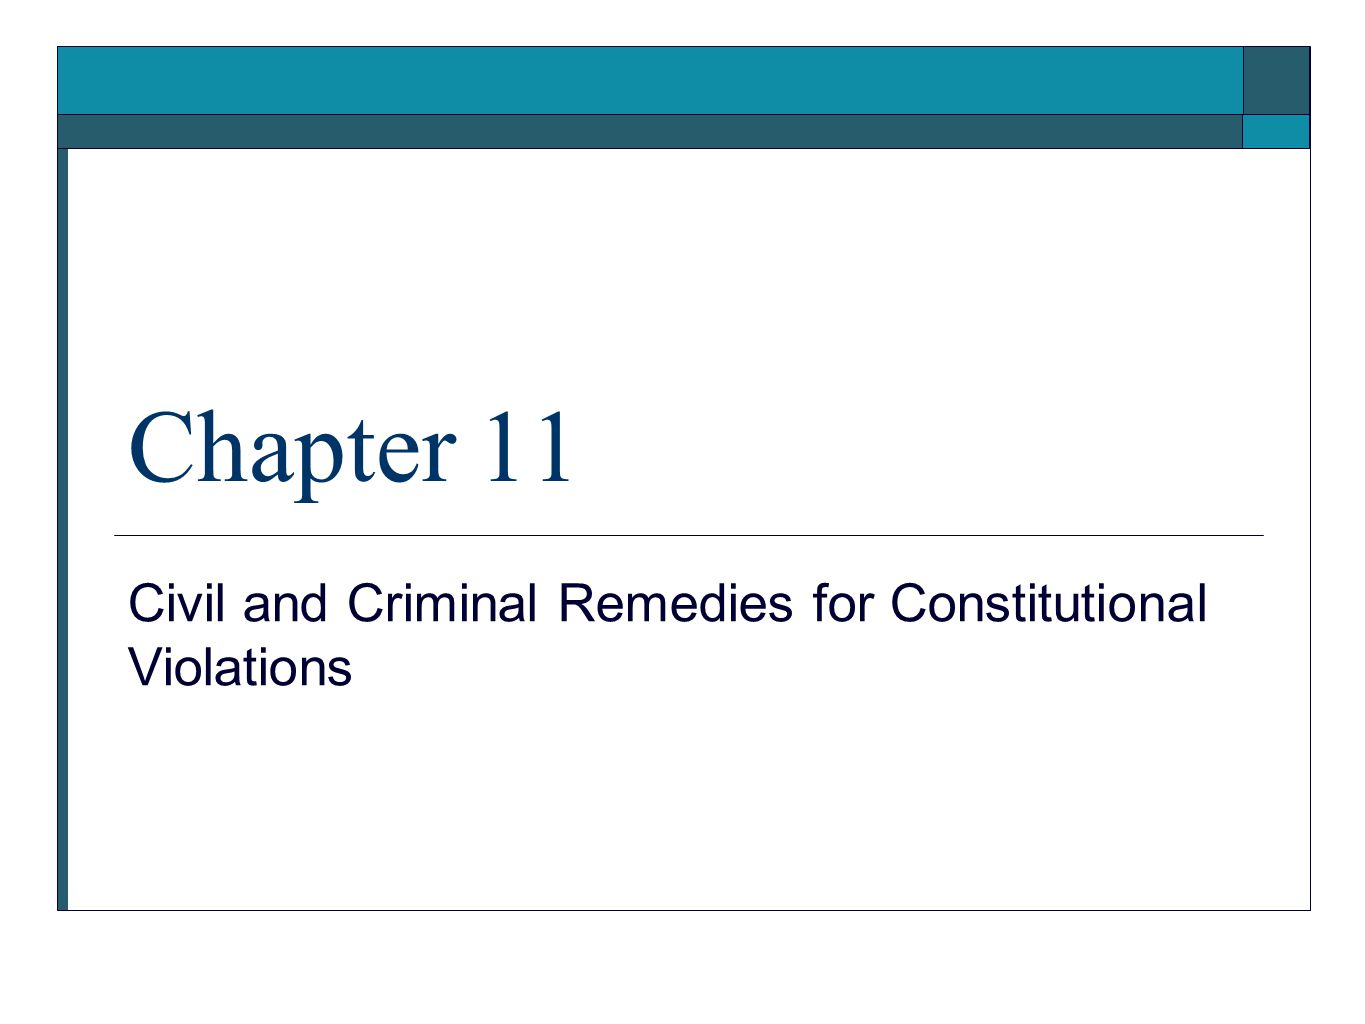 Civil and Criminal Remedies for Constitutional Violations